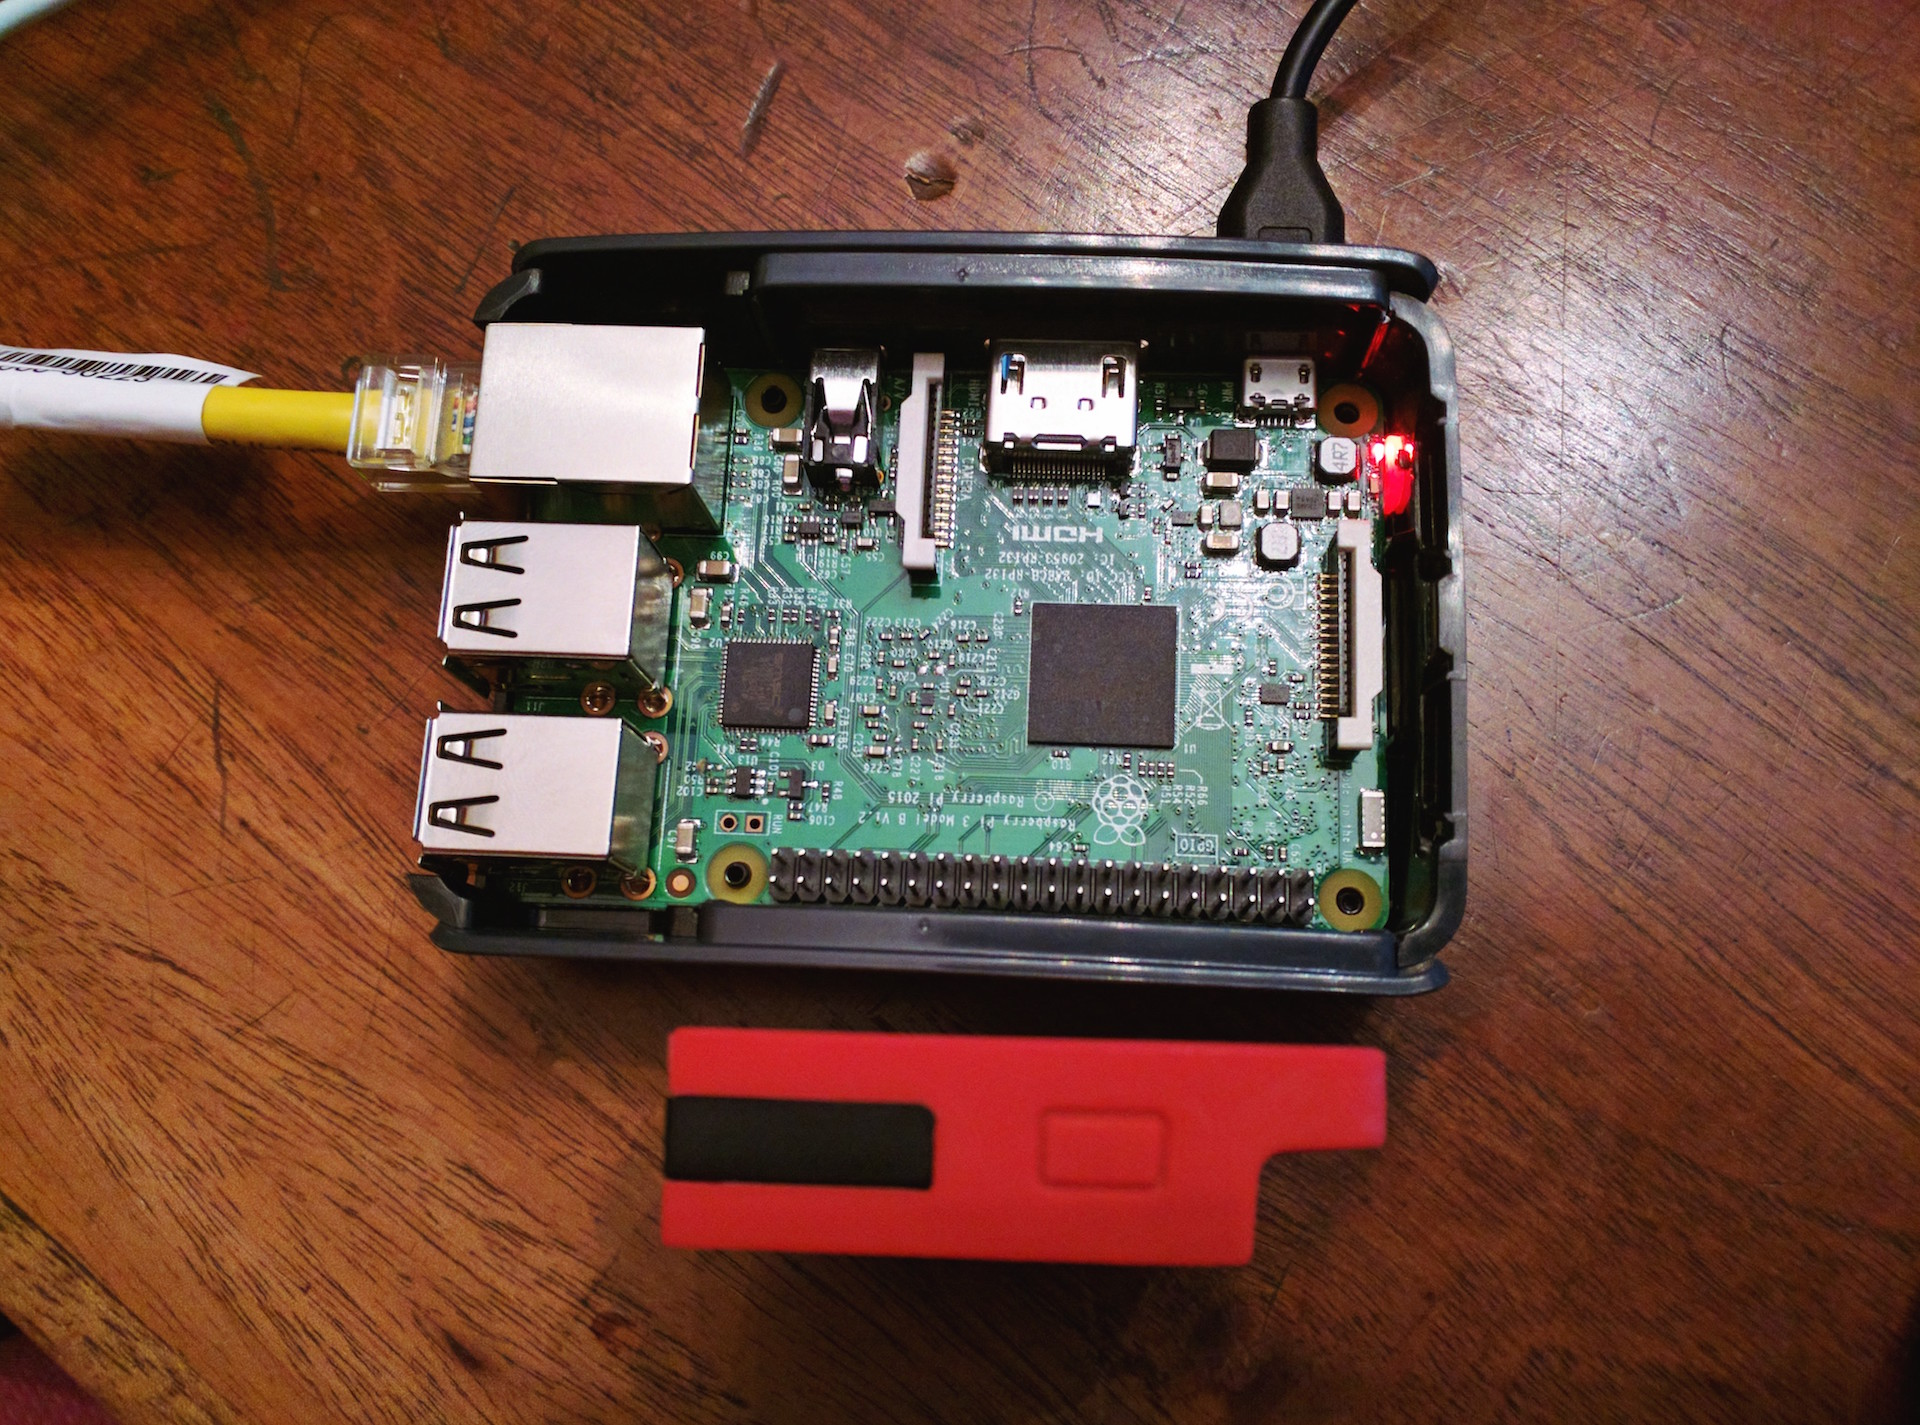 Connect Sensor Tag to Watson IoT platform using a Raspberry PI as gateway